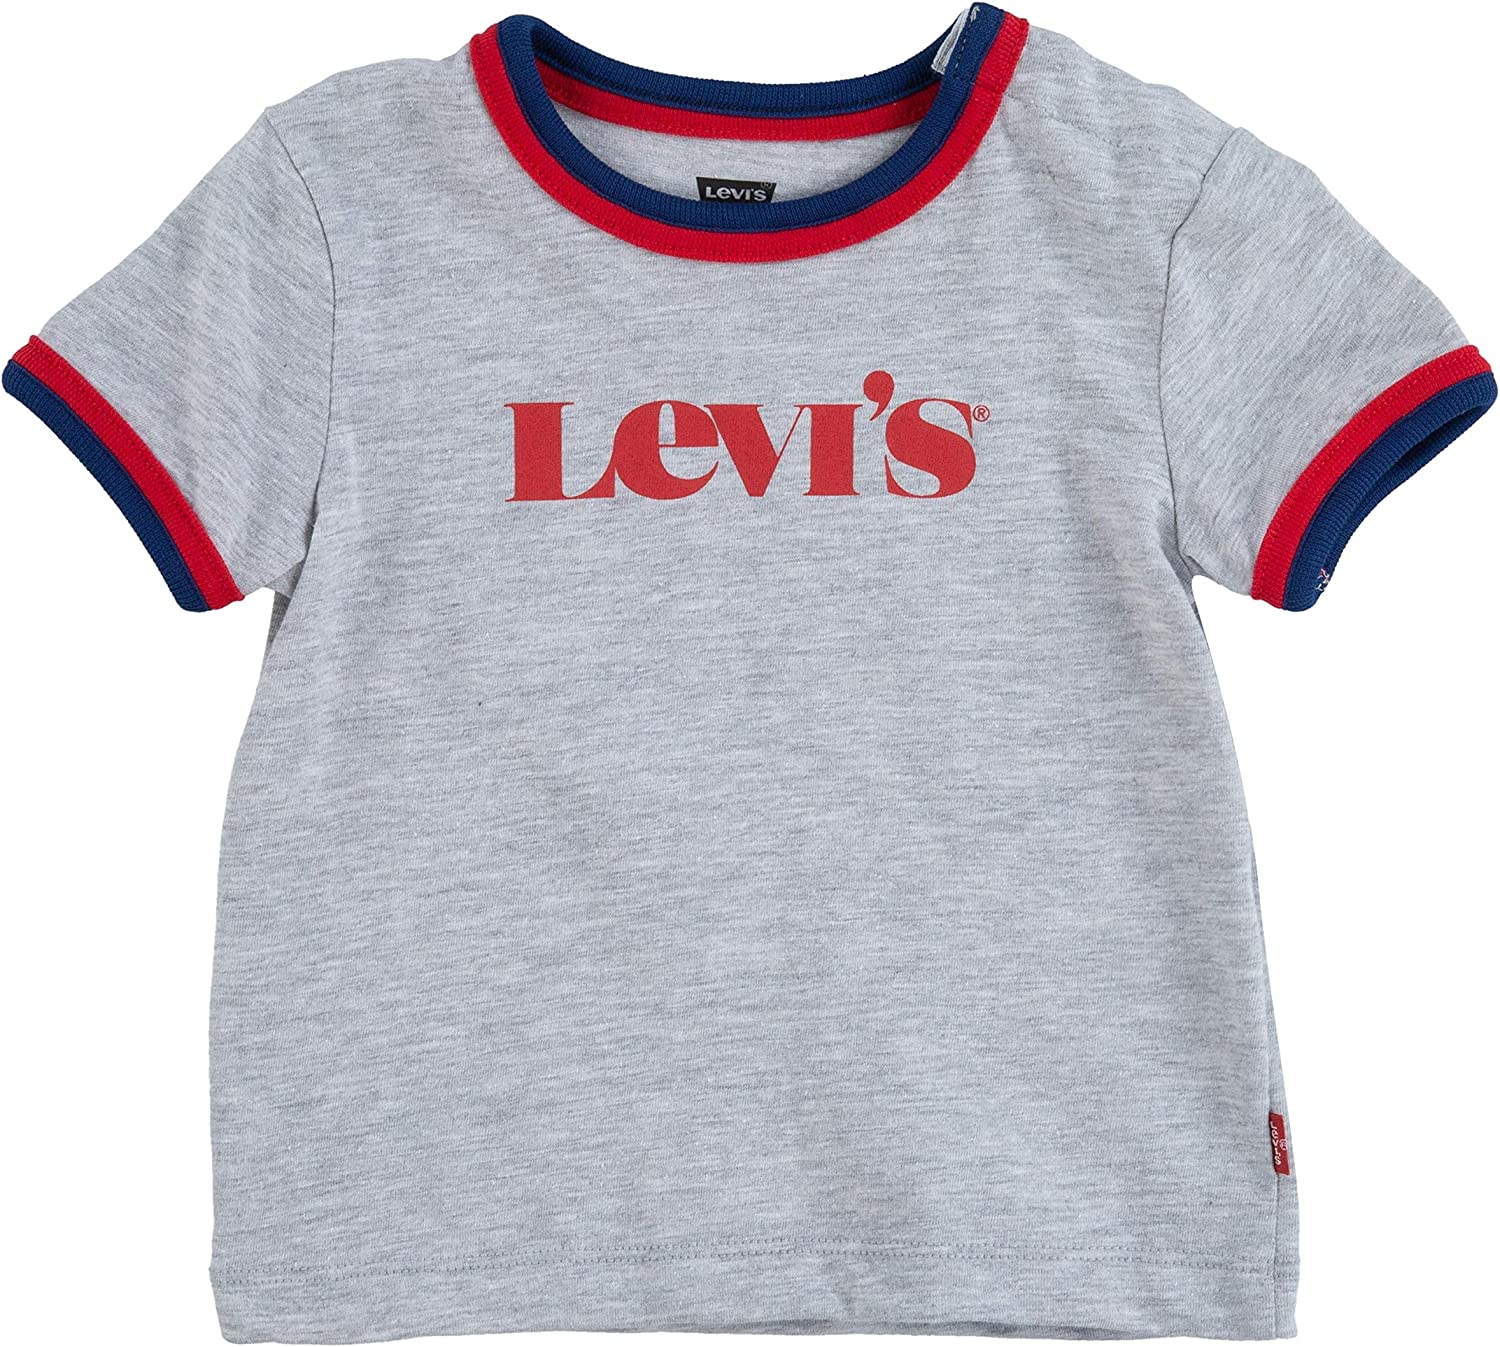 Levi's Baby Boys' Graphic T-Shirt: Clothing, Shoes & Jewelry